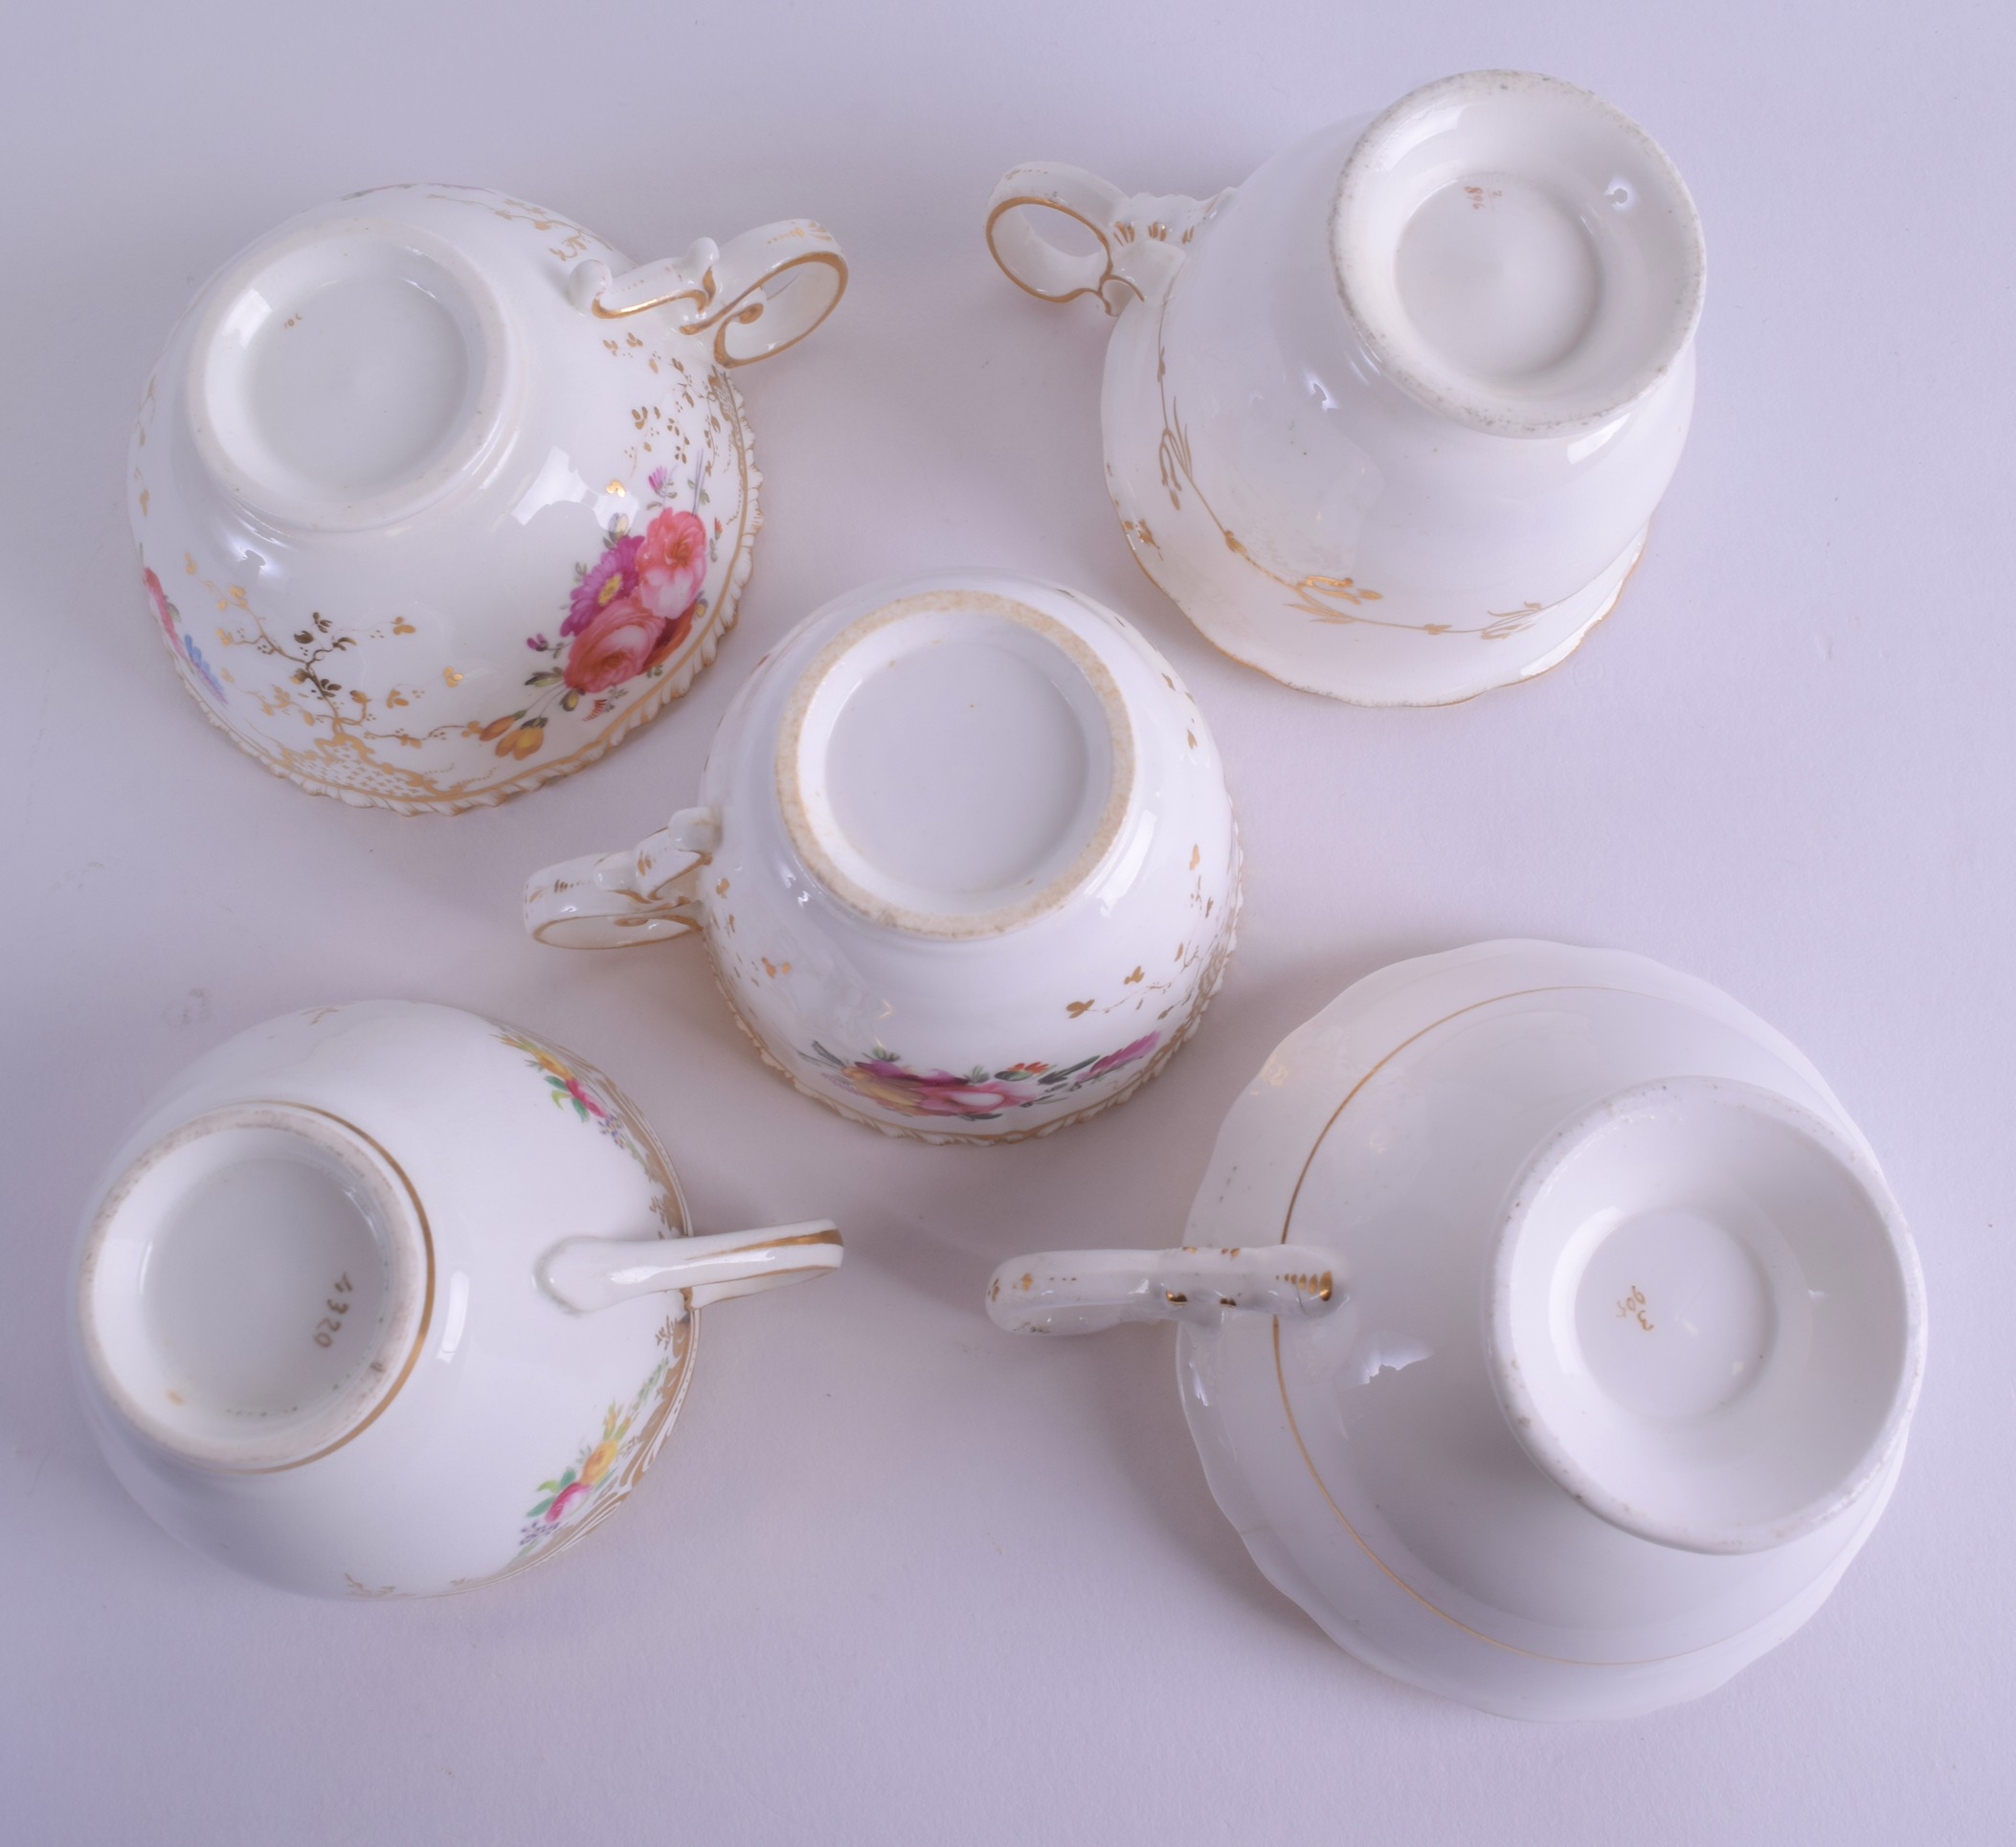 Lot 111 - A GROUP OF THREE EARLY 19TH CENTURY COALPORT CUPS AND SAUCERS together with an antique Adams style